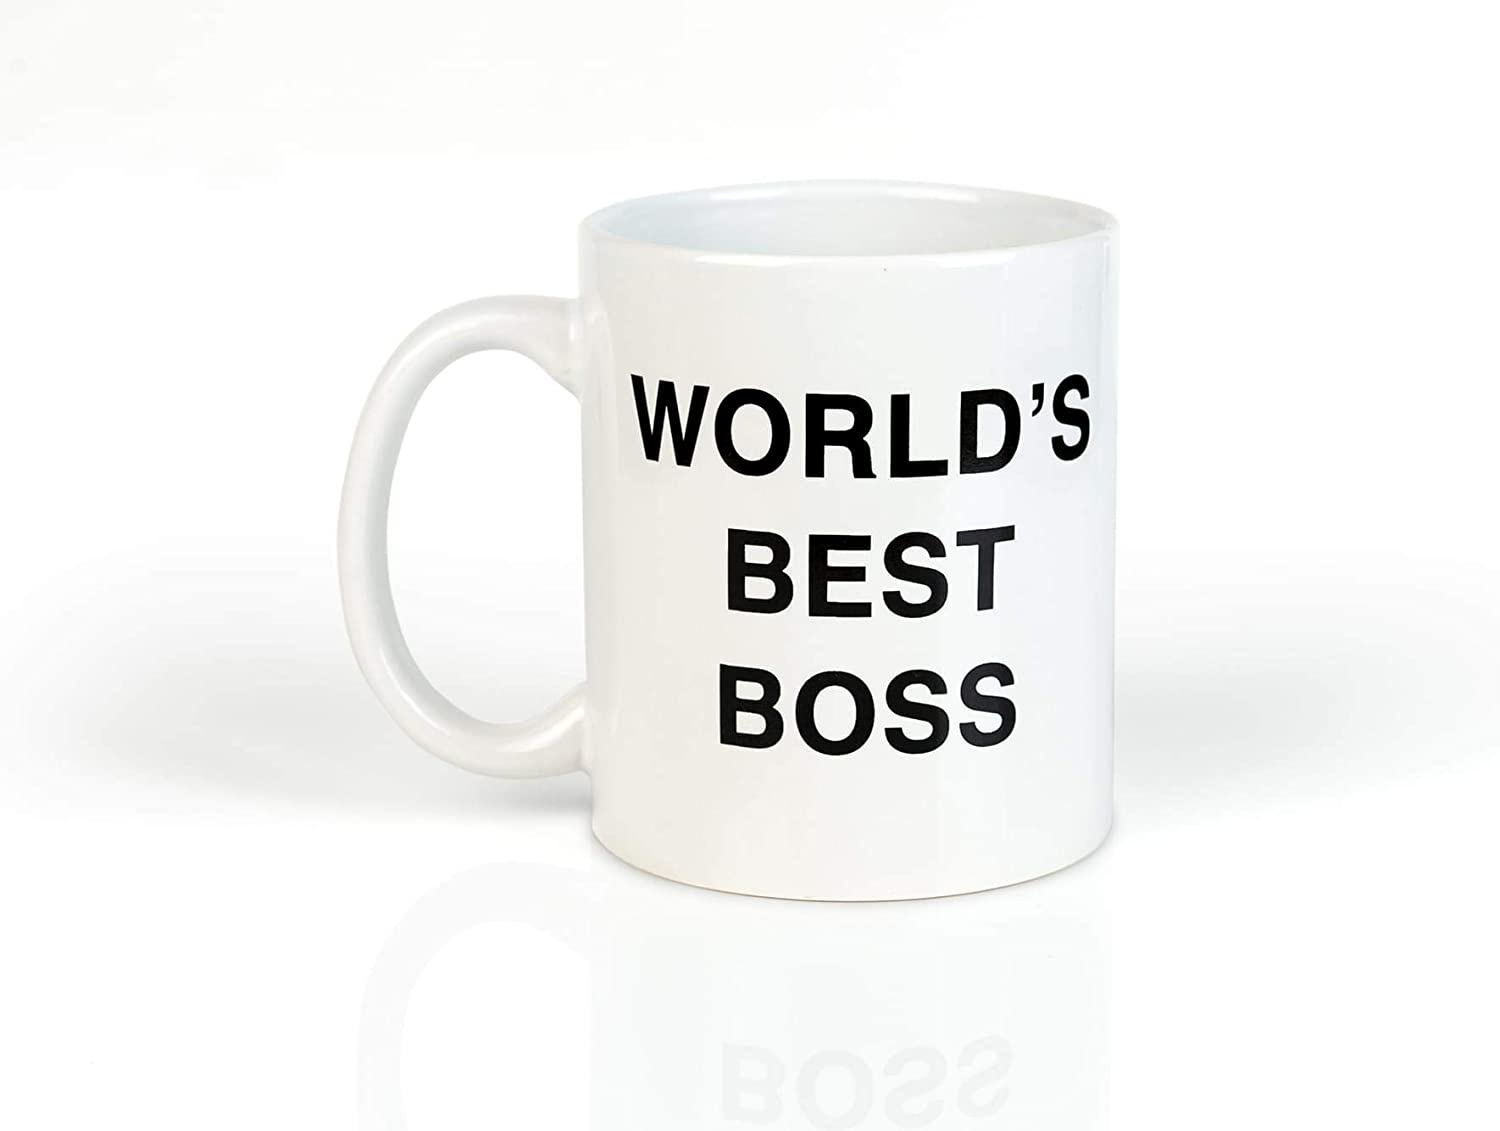 The Office World's Best Boss Ceramic Coffee Mug - Funny 11oz Dunder Mifflin Hot Tea Cup - Cute Christmas, Birthday Party Gag Gift For Men, Women, Coworkers, Colleague - Perfect For Desk, Kitchen, Work